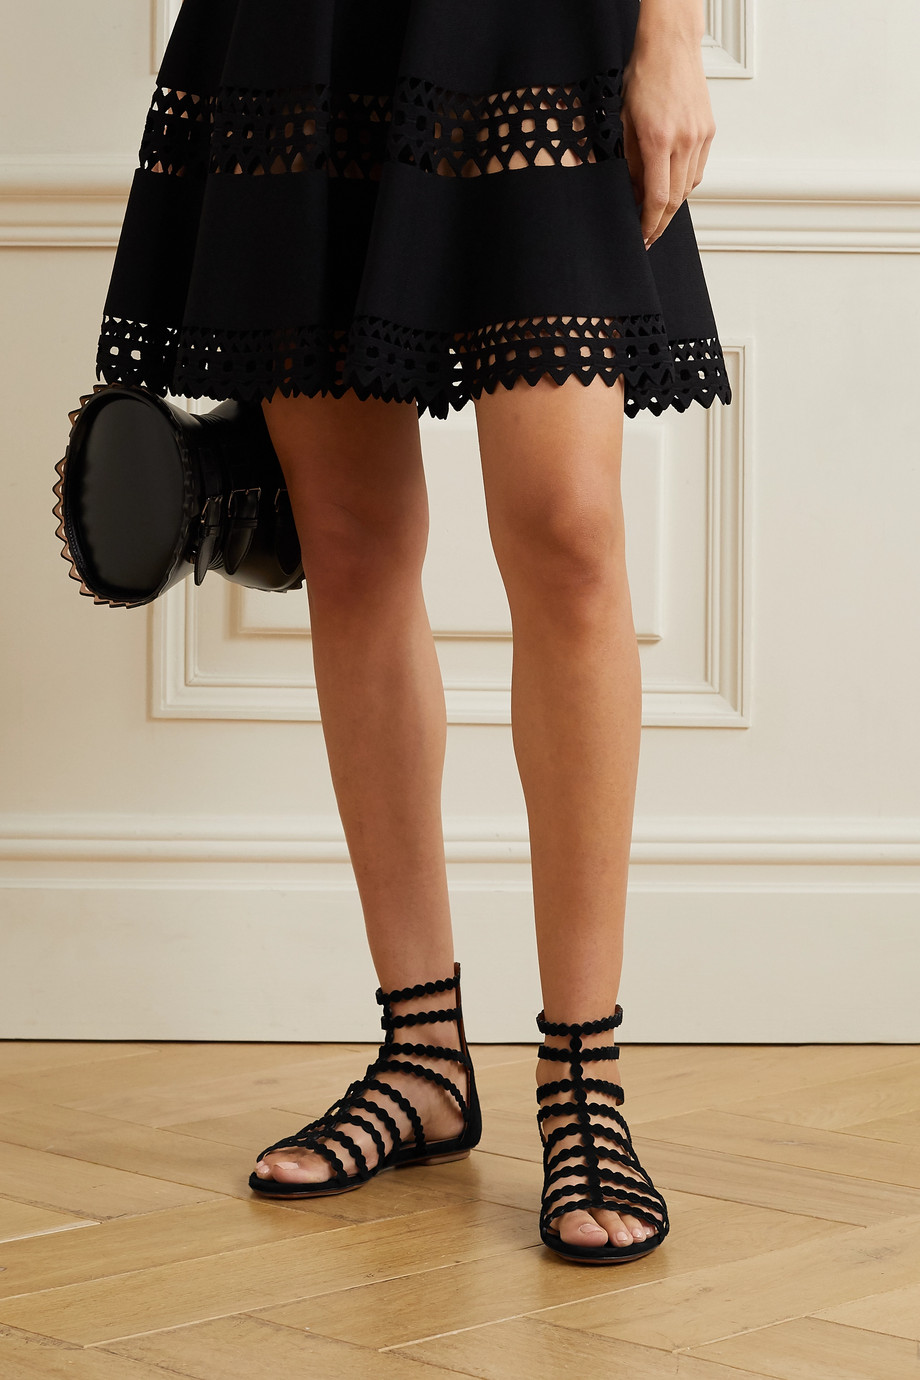 Alaïa Editions laser-cut suede sandals